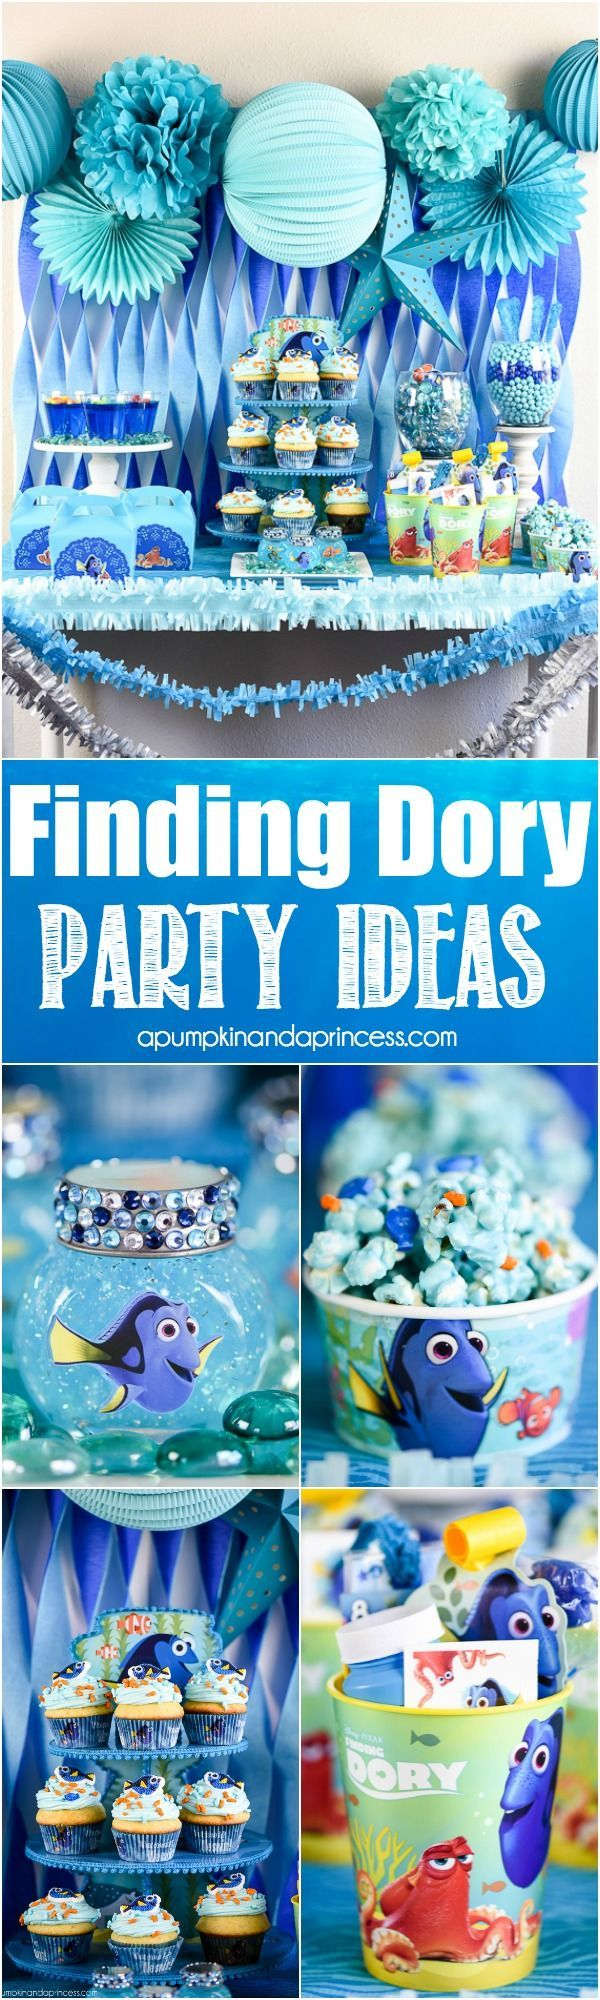 Home products company decorating ideas news amp media download contact - Finding Dory Party Ideas Easy Diy Finding Dory Treats Party Favors And Decorations